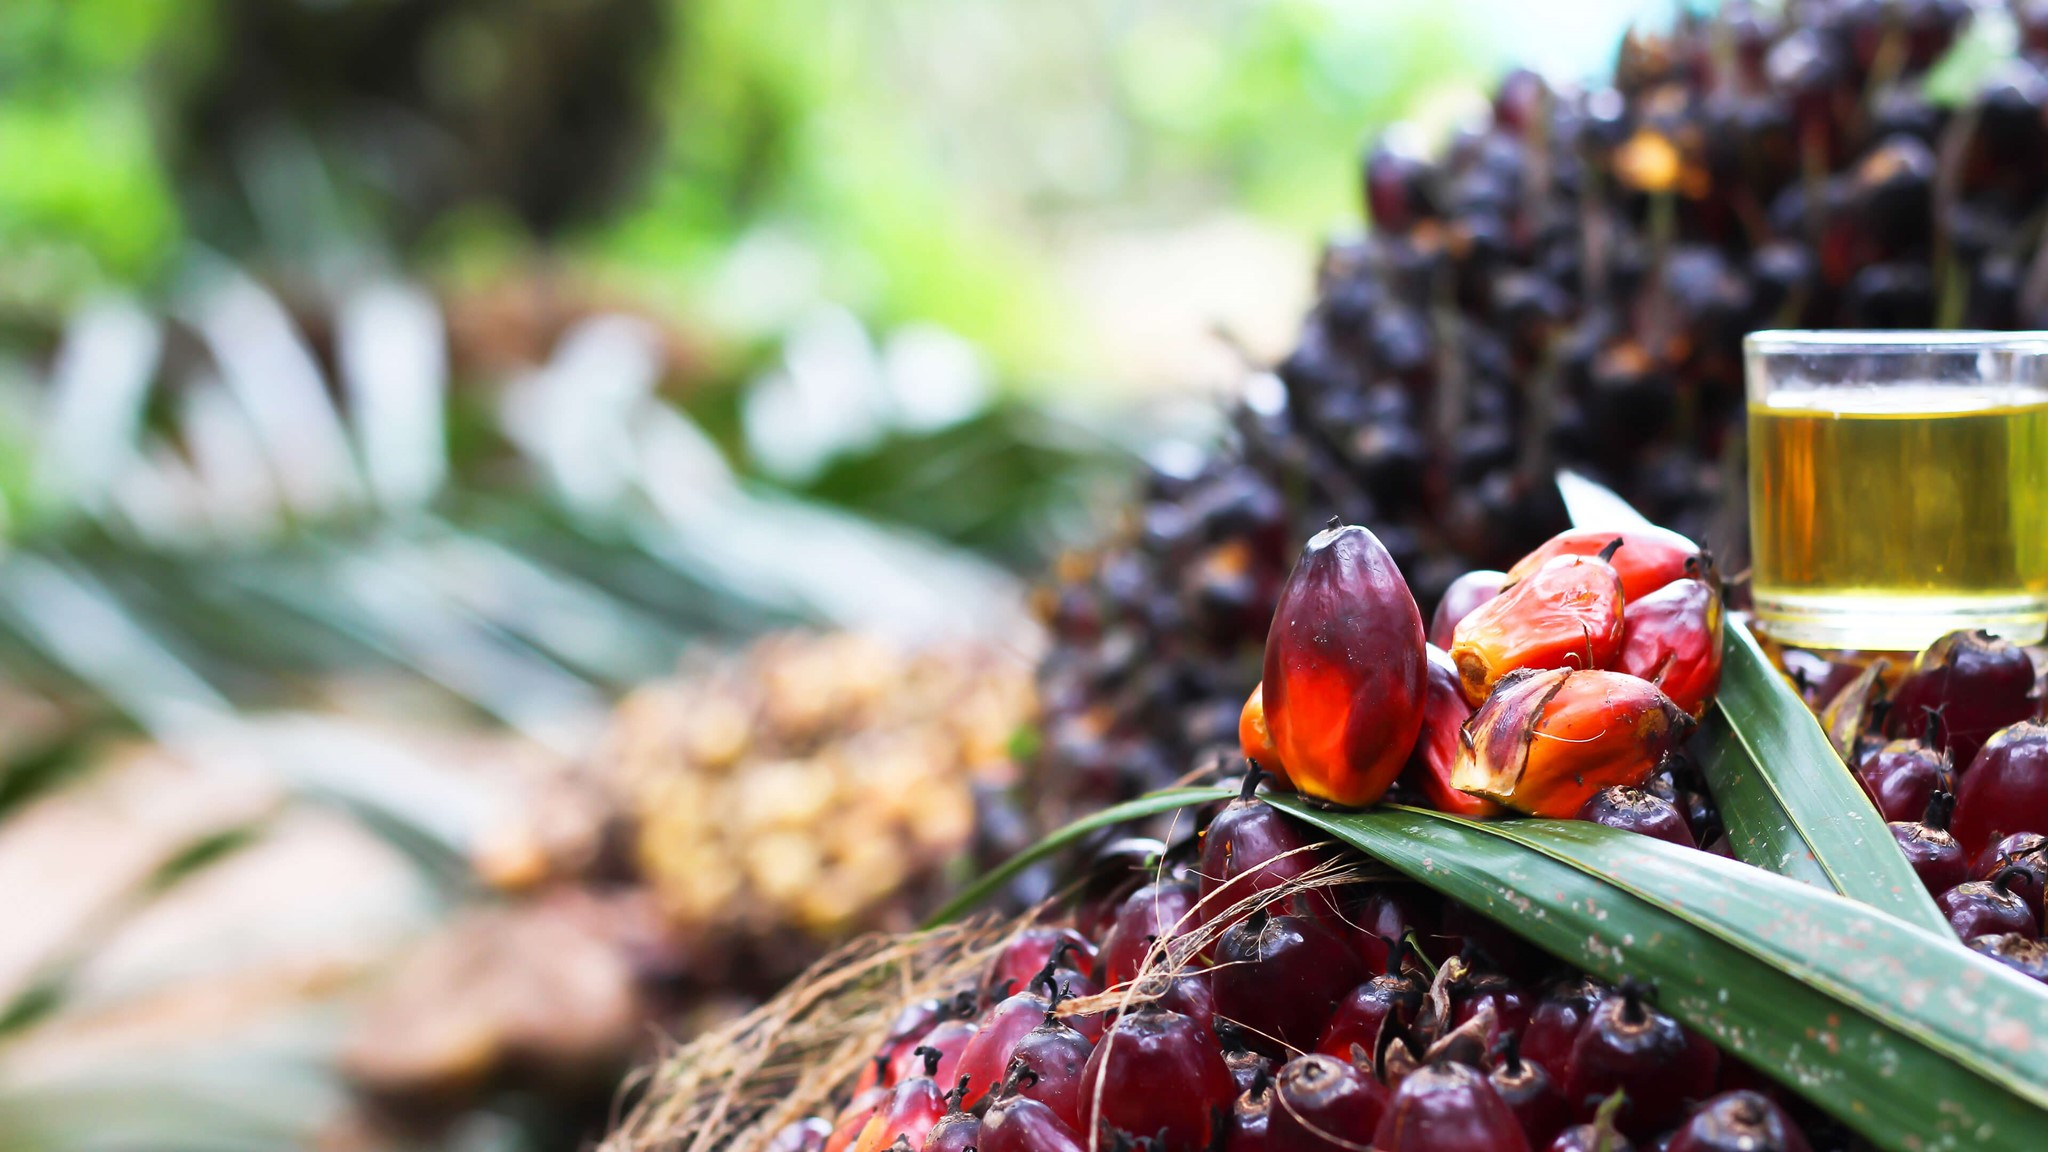 Awareness Raising Activities Increase Requests For Certified Sustainable Palm Oil From Palsgaard In 2018